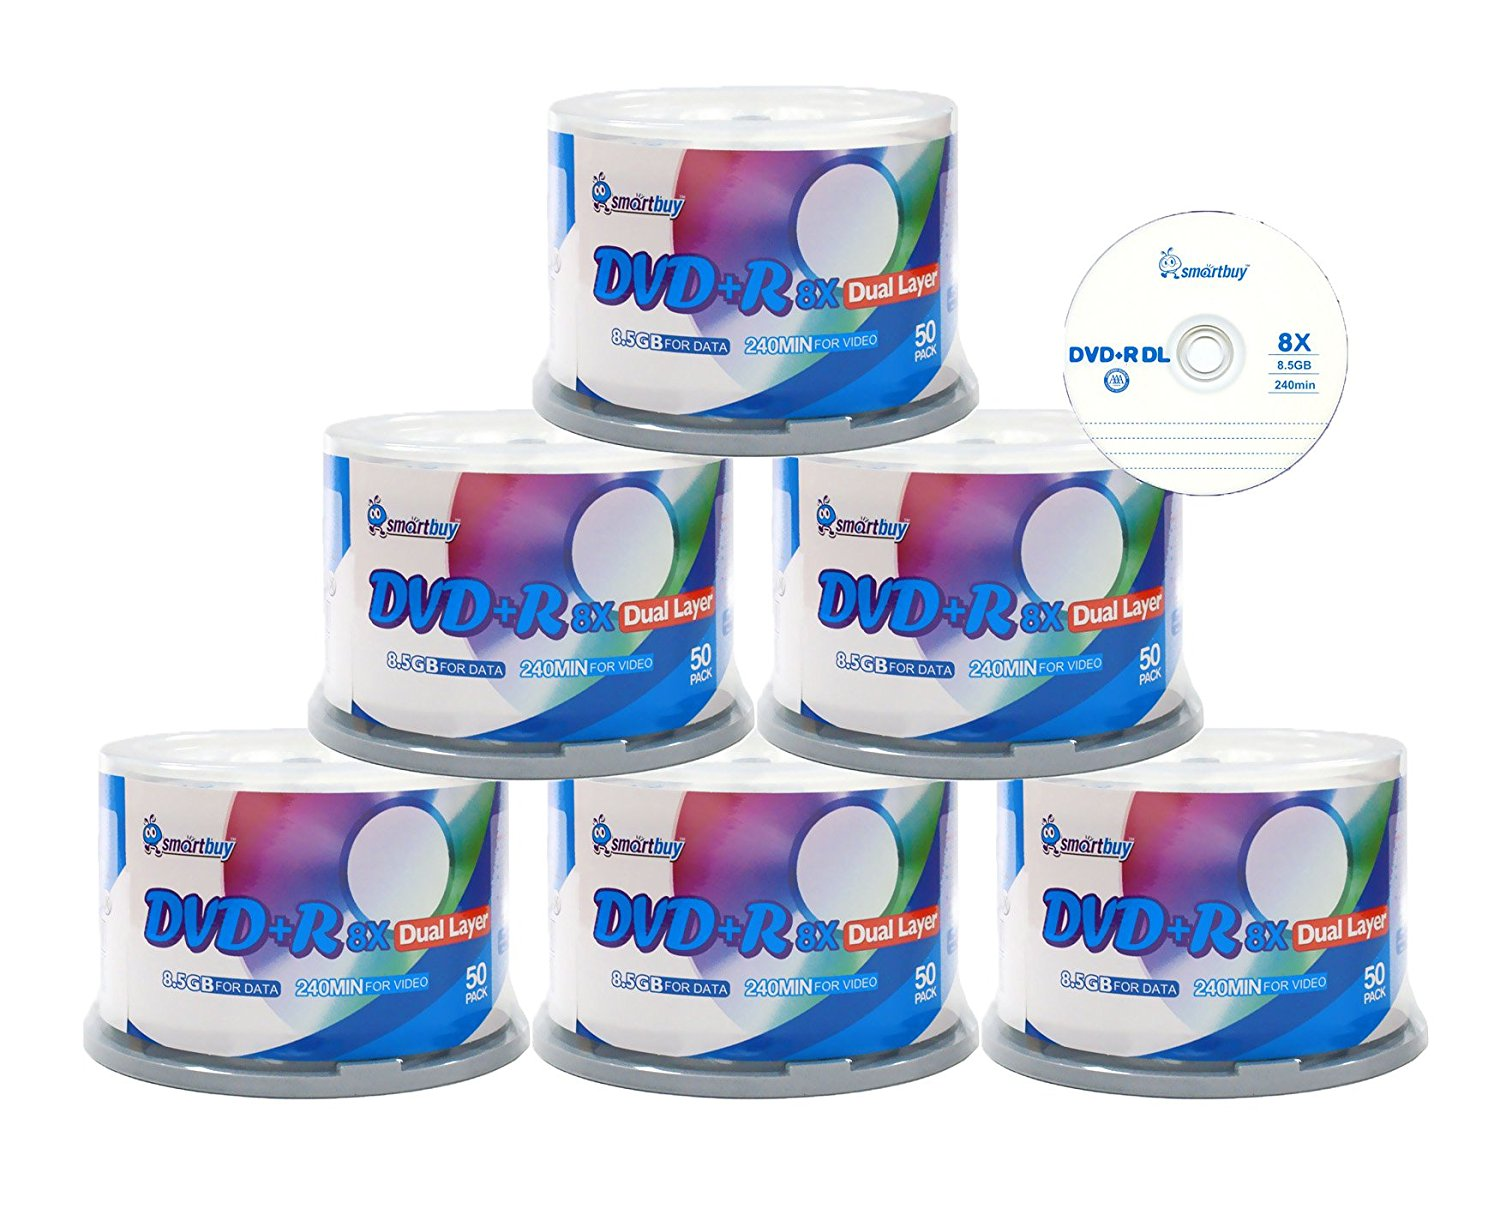 Smartbuy Logo 300-disc 8.5gb/240min 8x Dvd+r Dl Dual Layer Double Layer Blank Data Record Media Disc Spindle